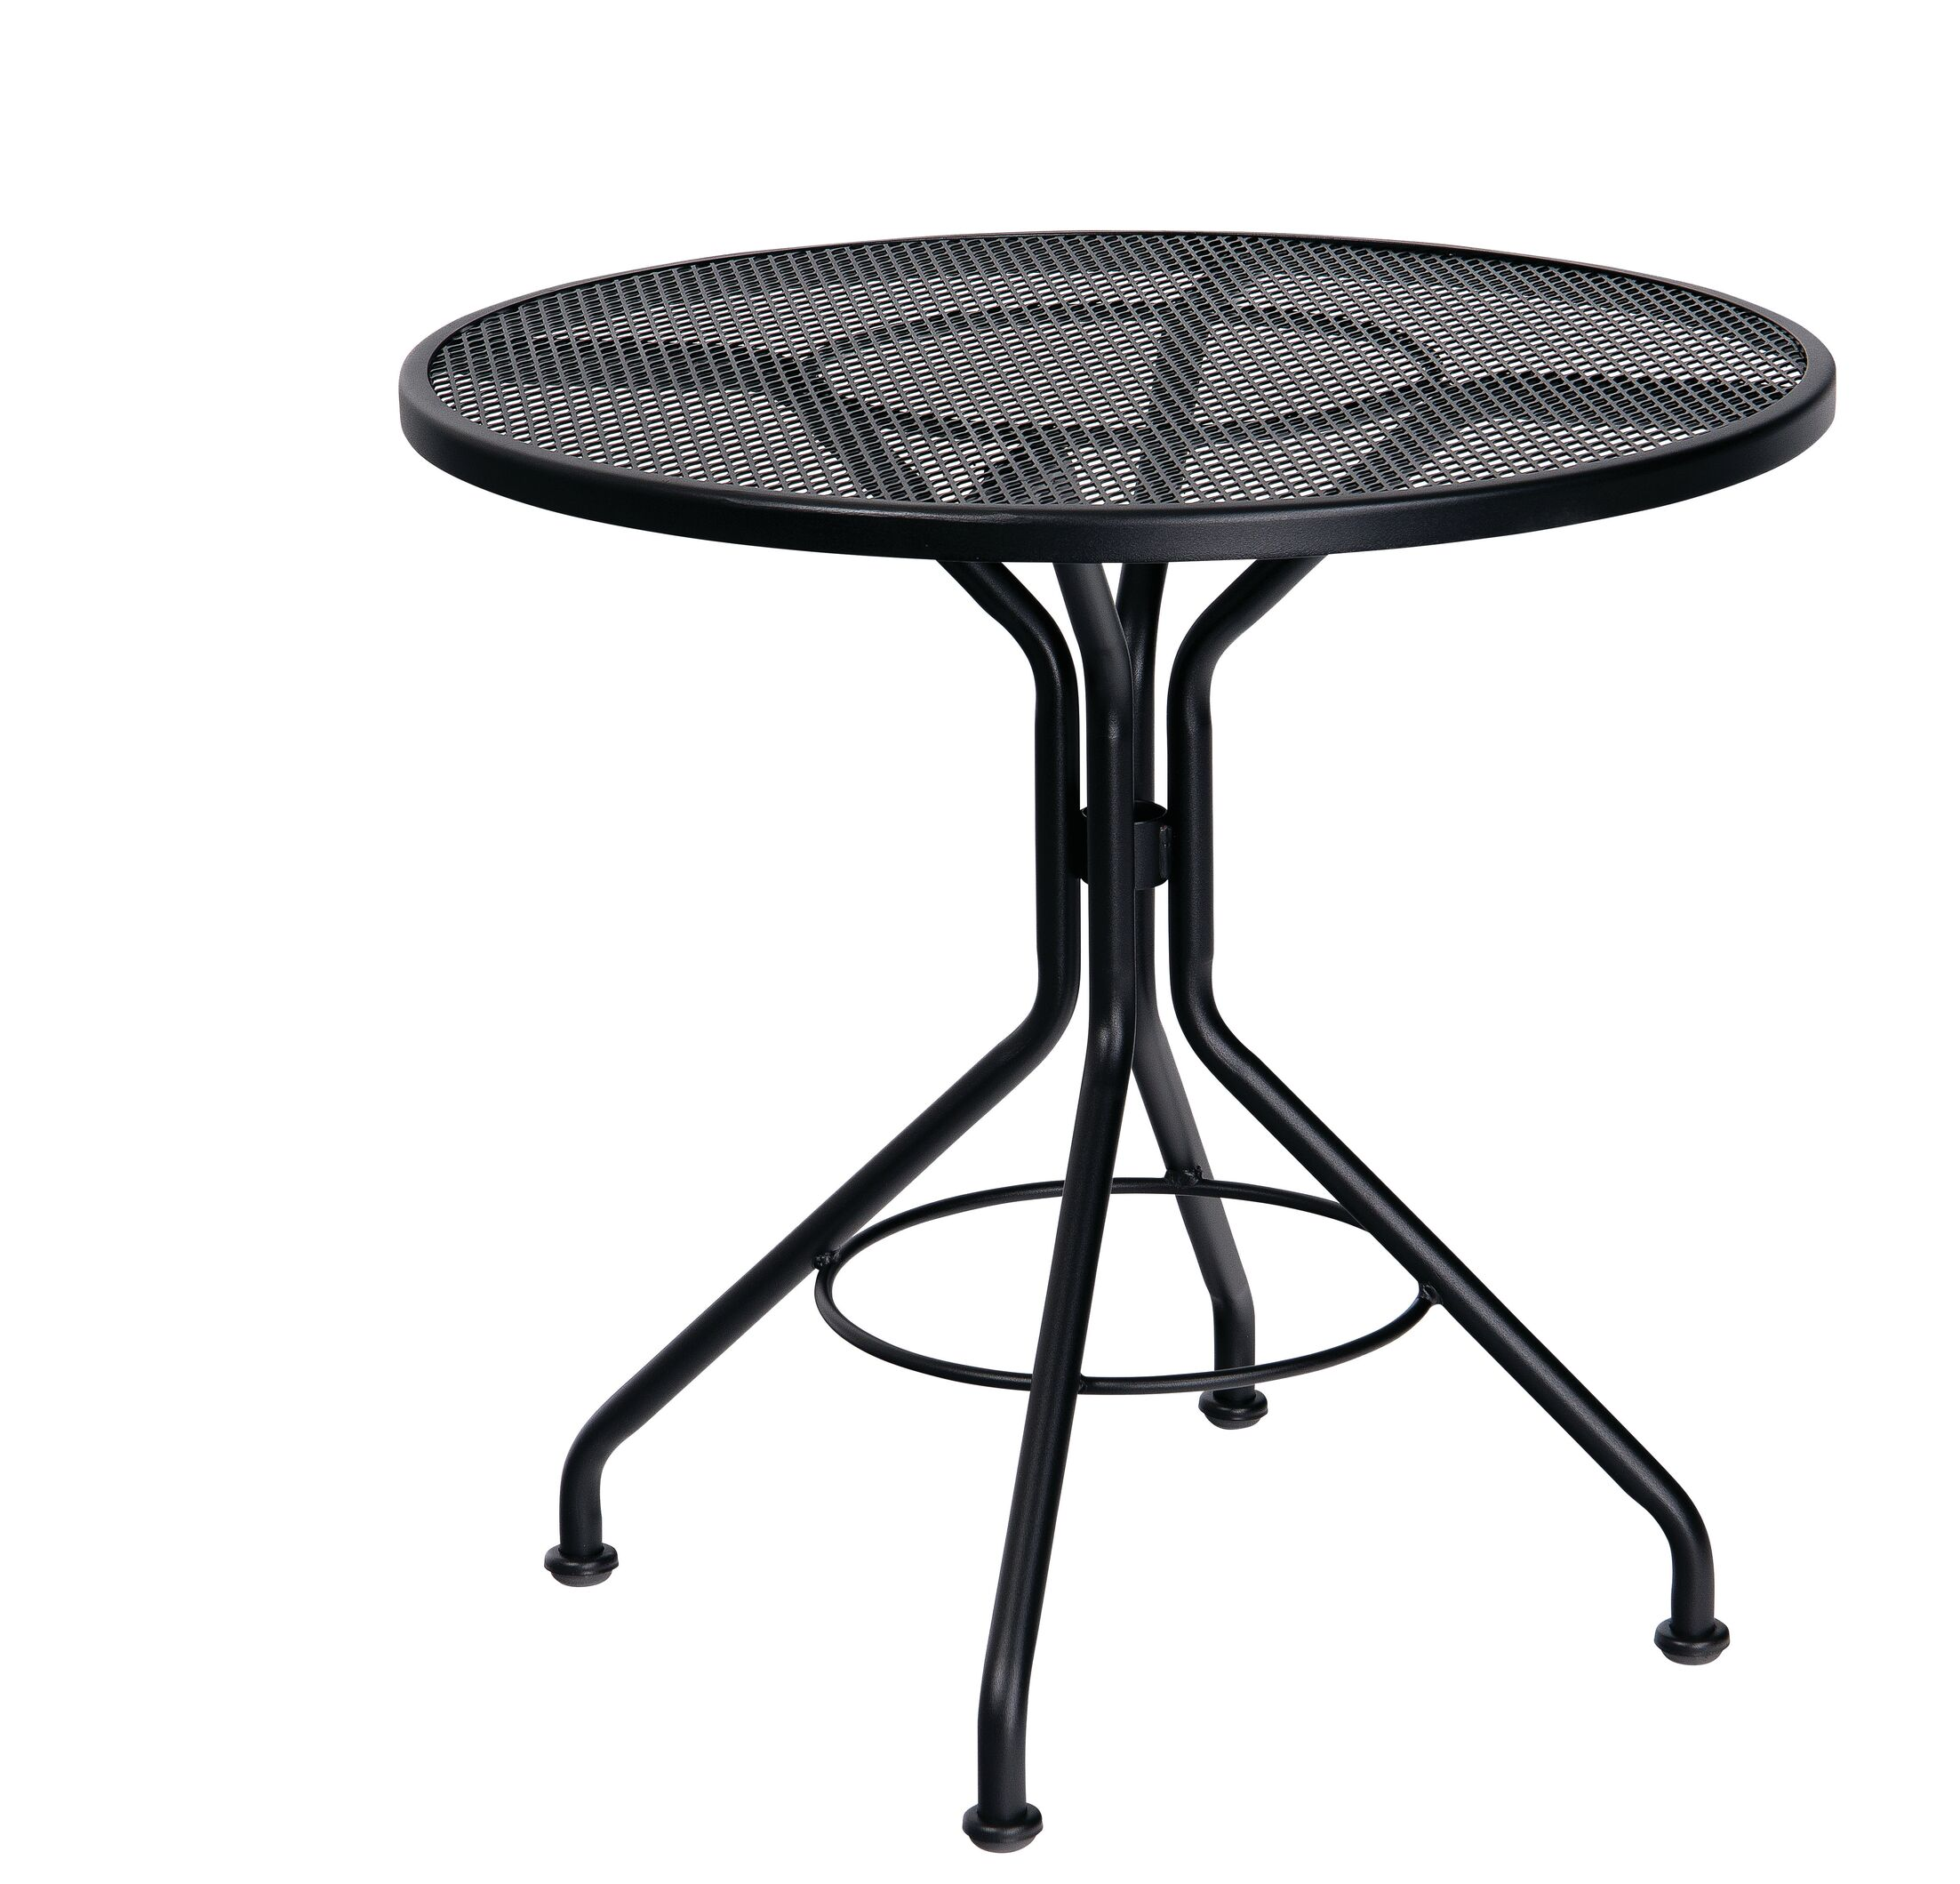 Mesh Top Contract Round Wrought Iron Dining Table